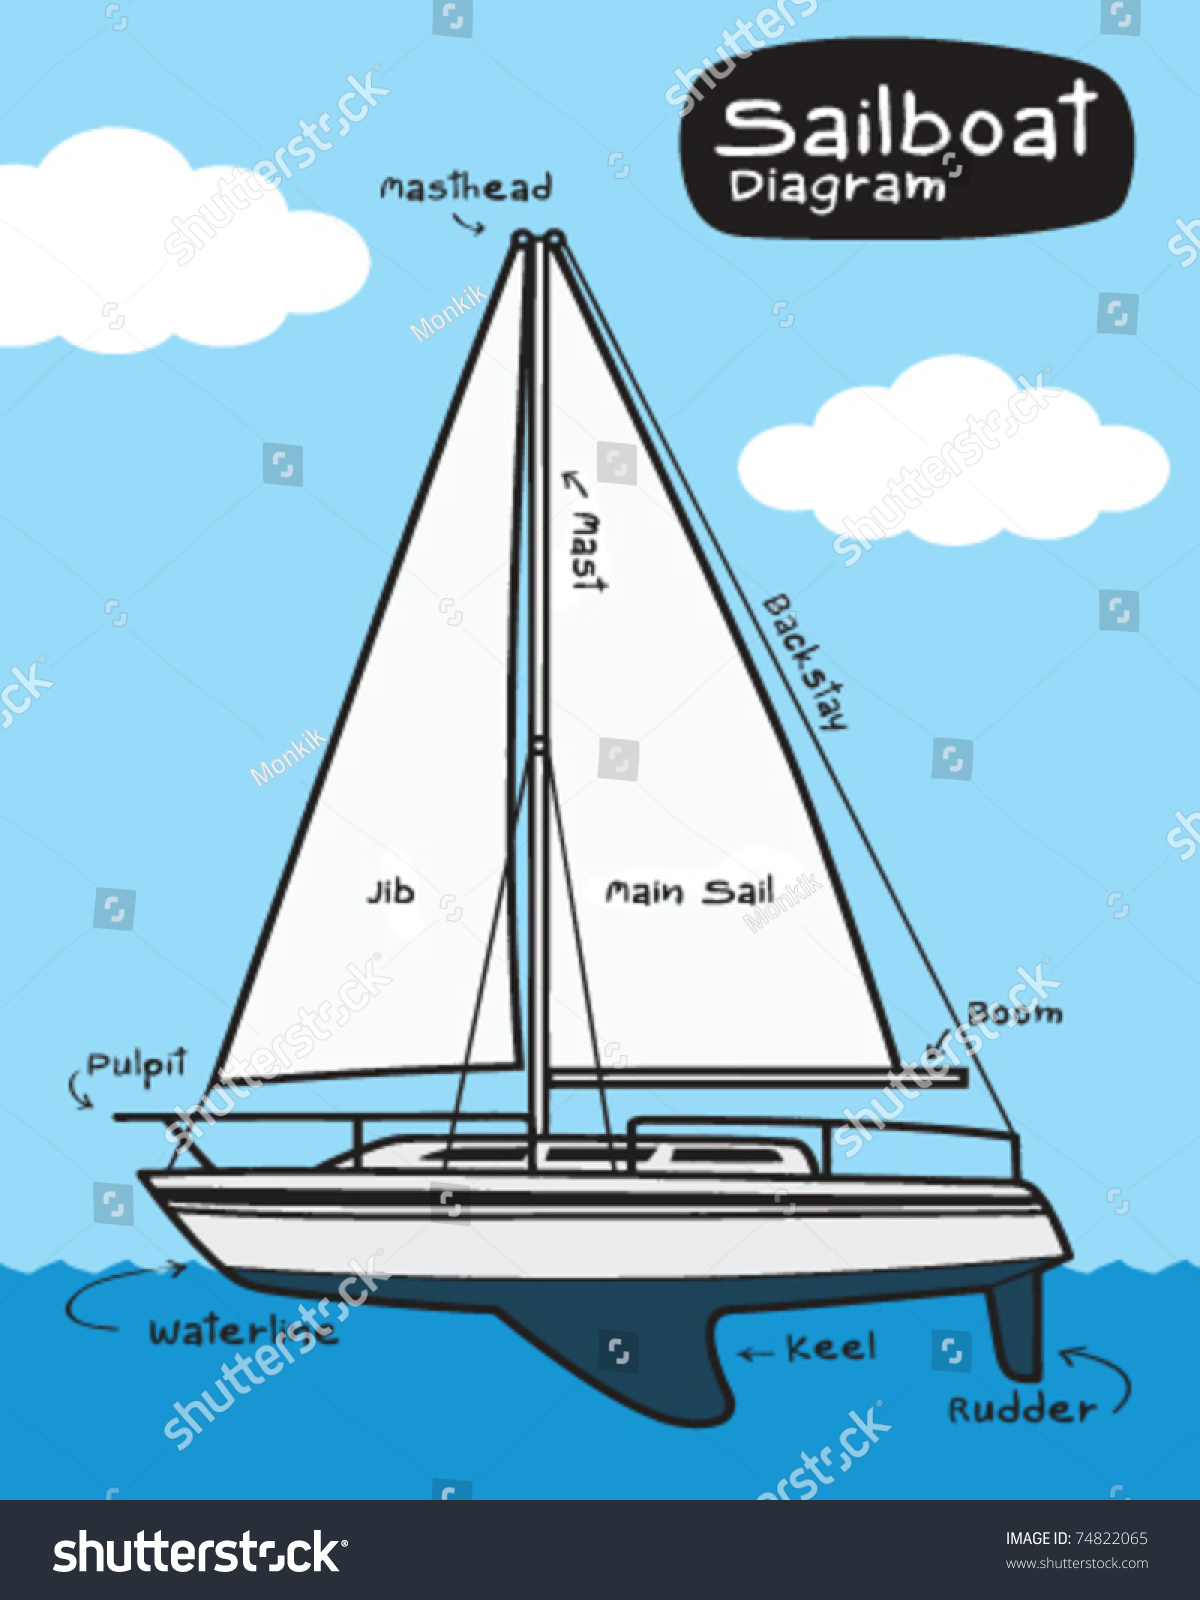 Sailboat Diagram Stock Vector 74822065